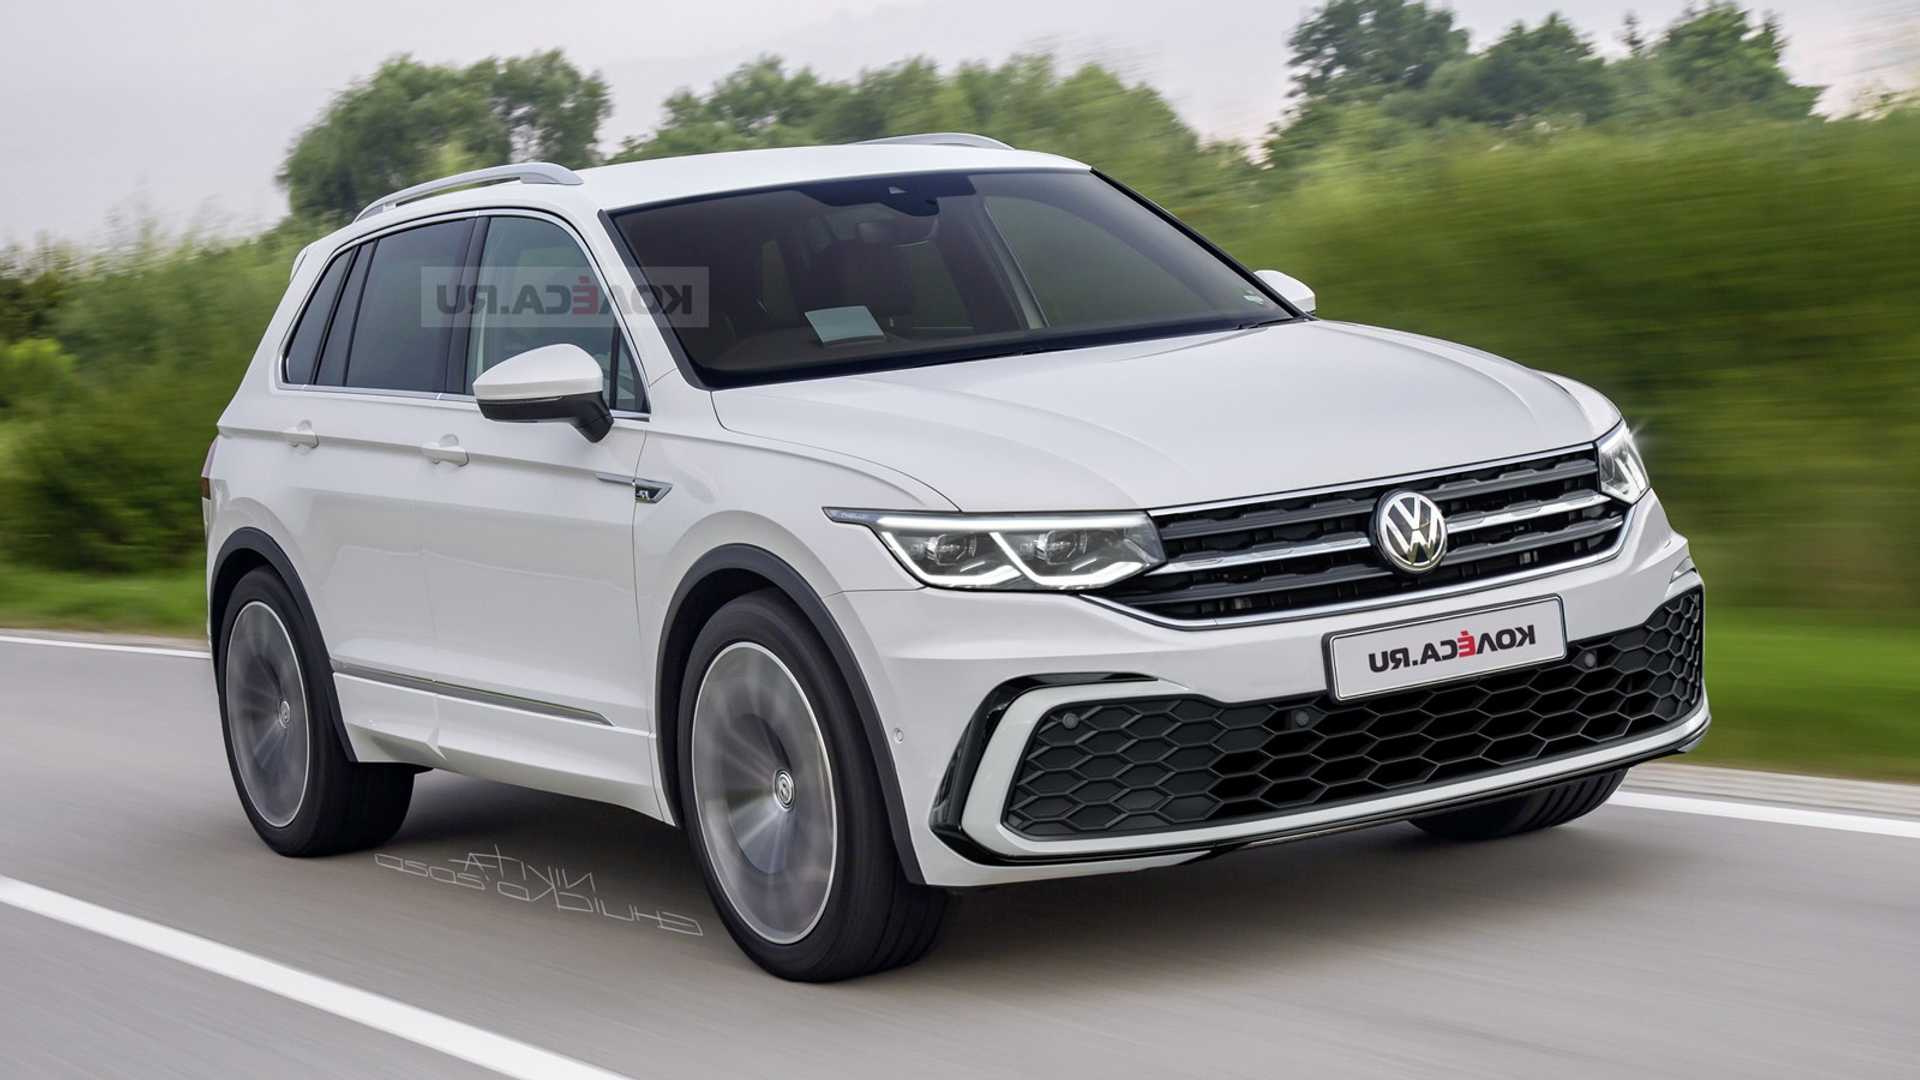 2021 VW Tiguan USA Release Date, Price, Review ...